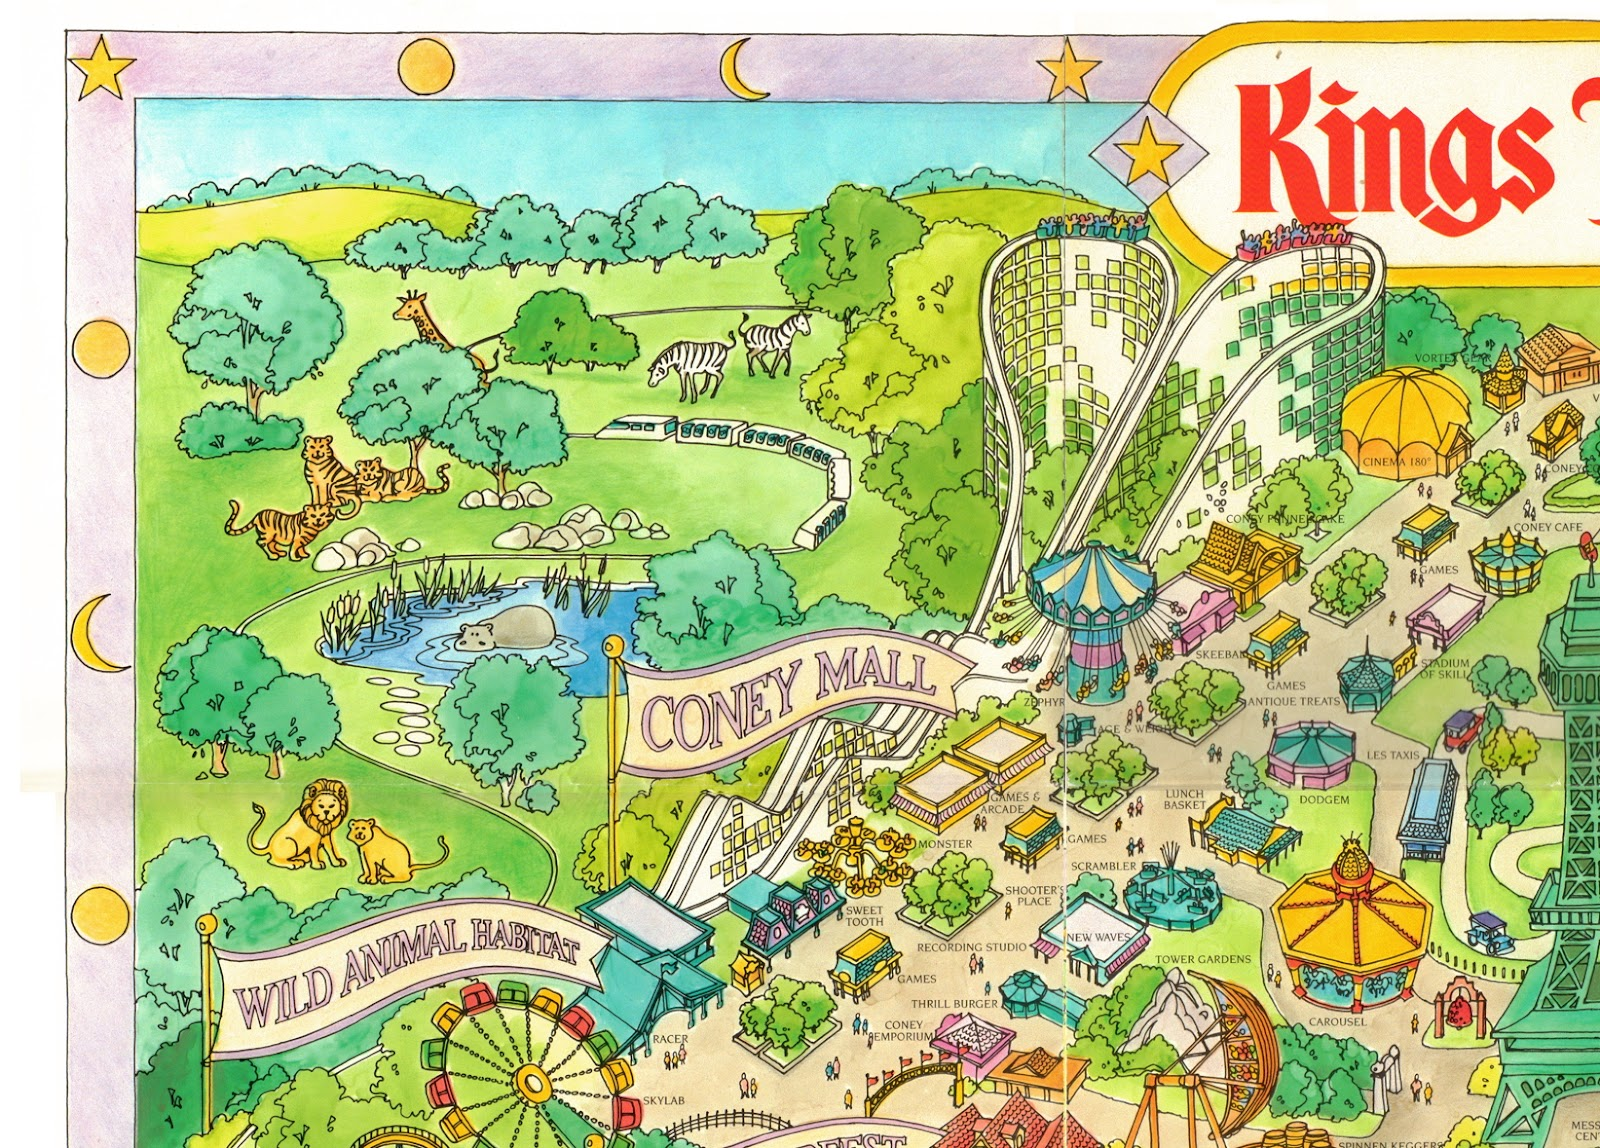 NewsPlusNotes: Kings Island 1989 Souvenir Map on new york city new jersey map, wild river country map, apostle islands map, carowinds map, north island naval base map, islands of adventure map, canada's wonderland map, kiddieland map, paramount park map, disney's blizzard beach map, coney island fun map, westbury new york map, beach waterpark map, six flags map, cincinnati map, cedar point map, oaks amusement park map, michigan adventure map, long island satellite map, disneyland map,